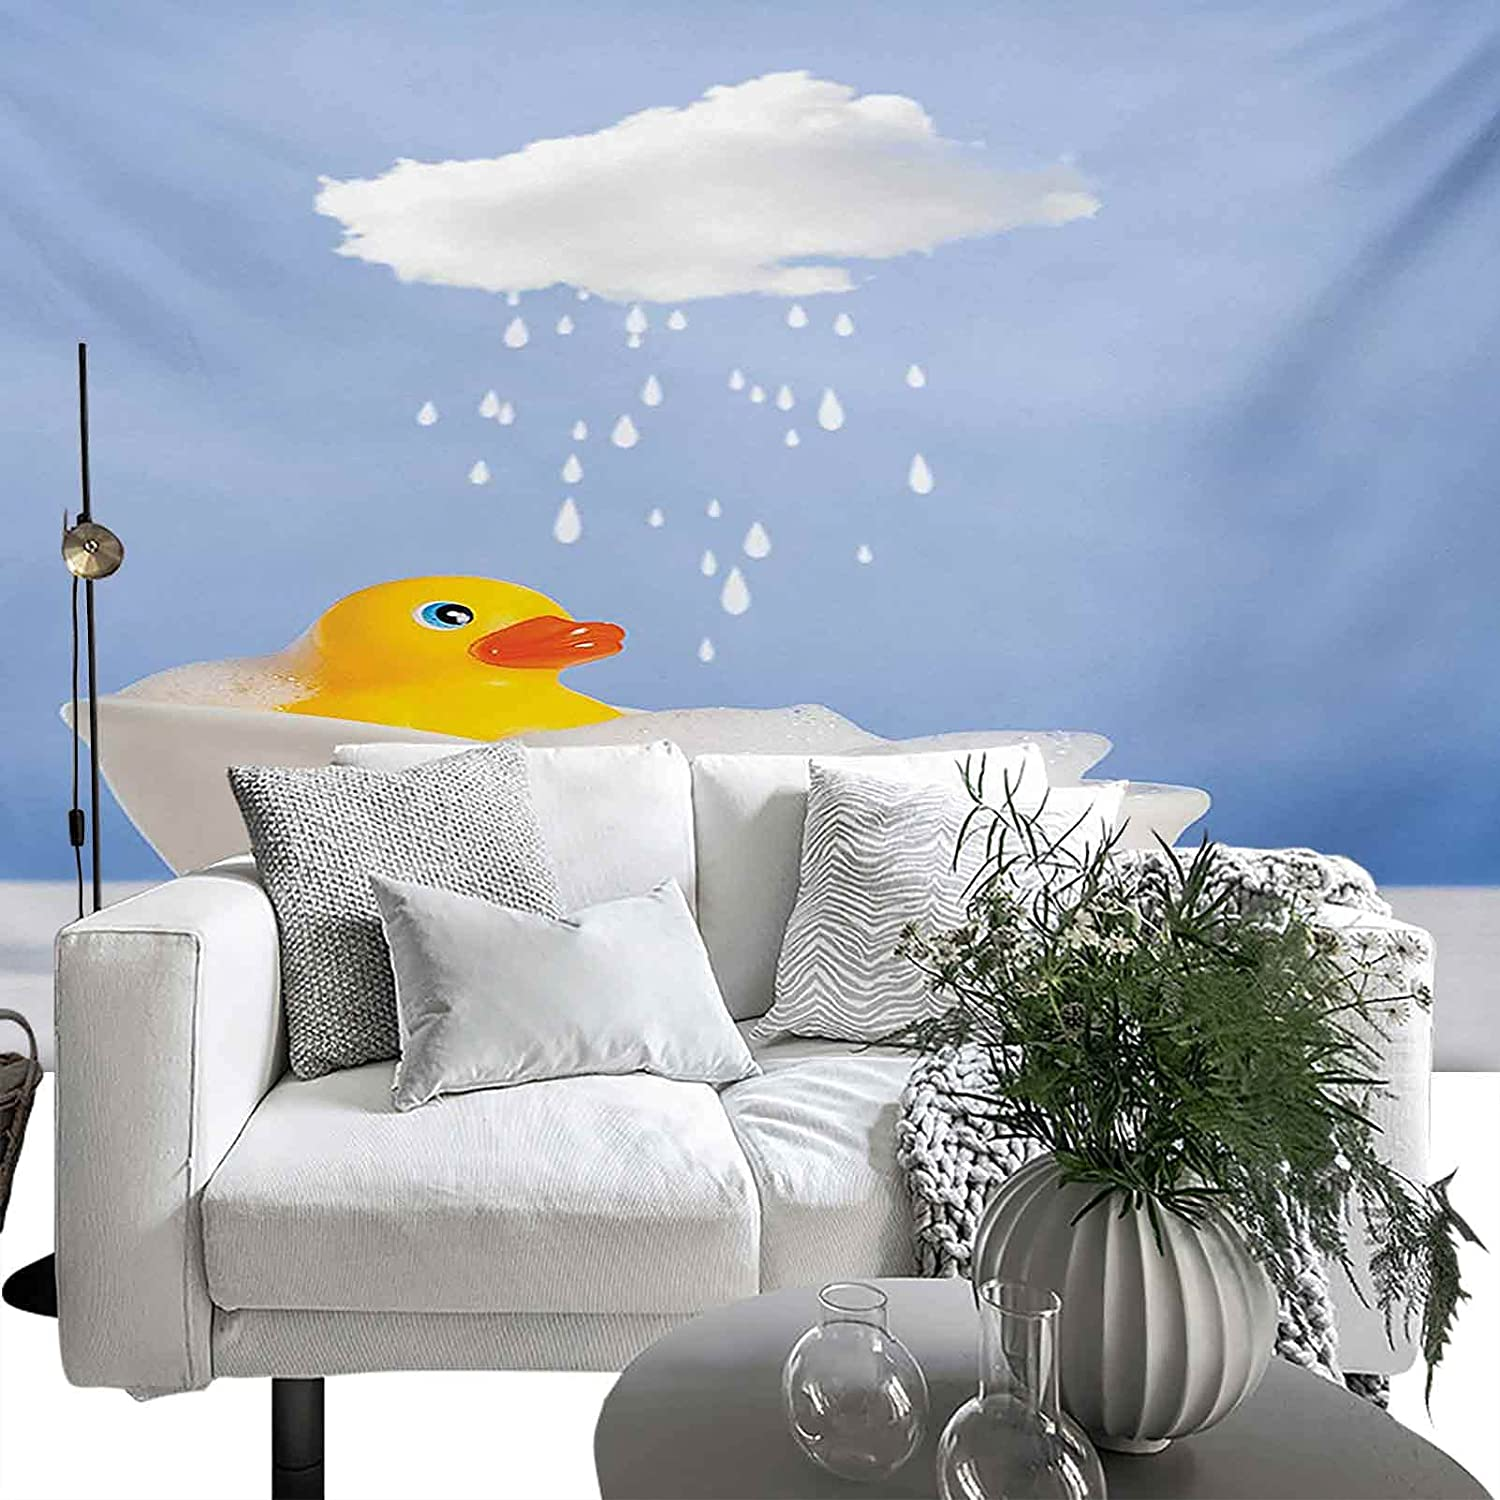 Removable A surprise price is realized Self-Adhesive Sale Special Price Rubber Duck Bath a wi Taking